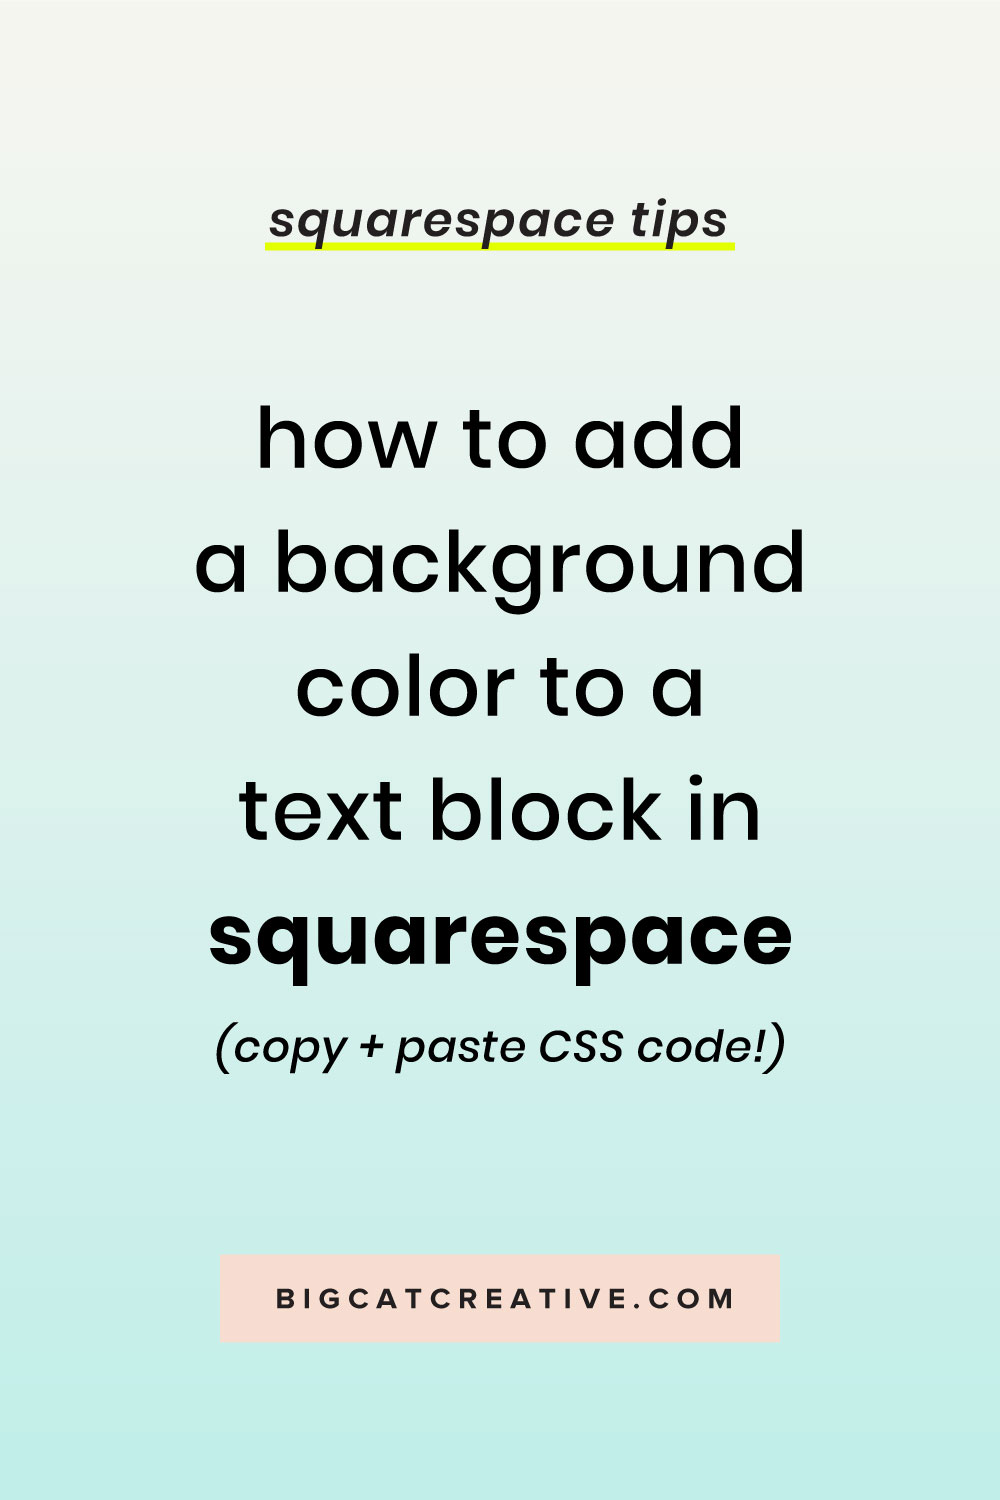 How to Add a Background Color to a Text Block in Squarespace